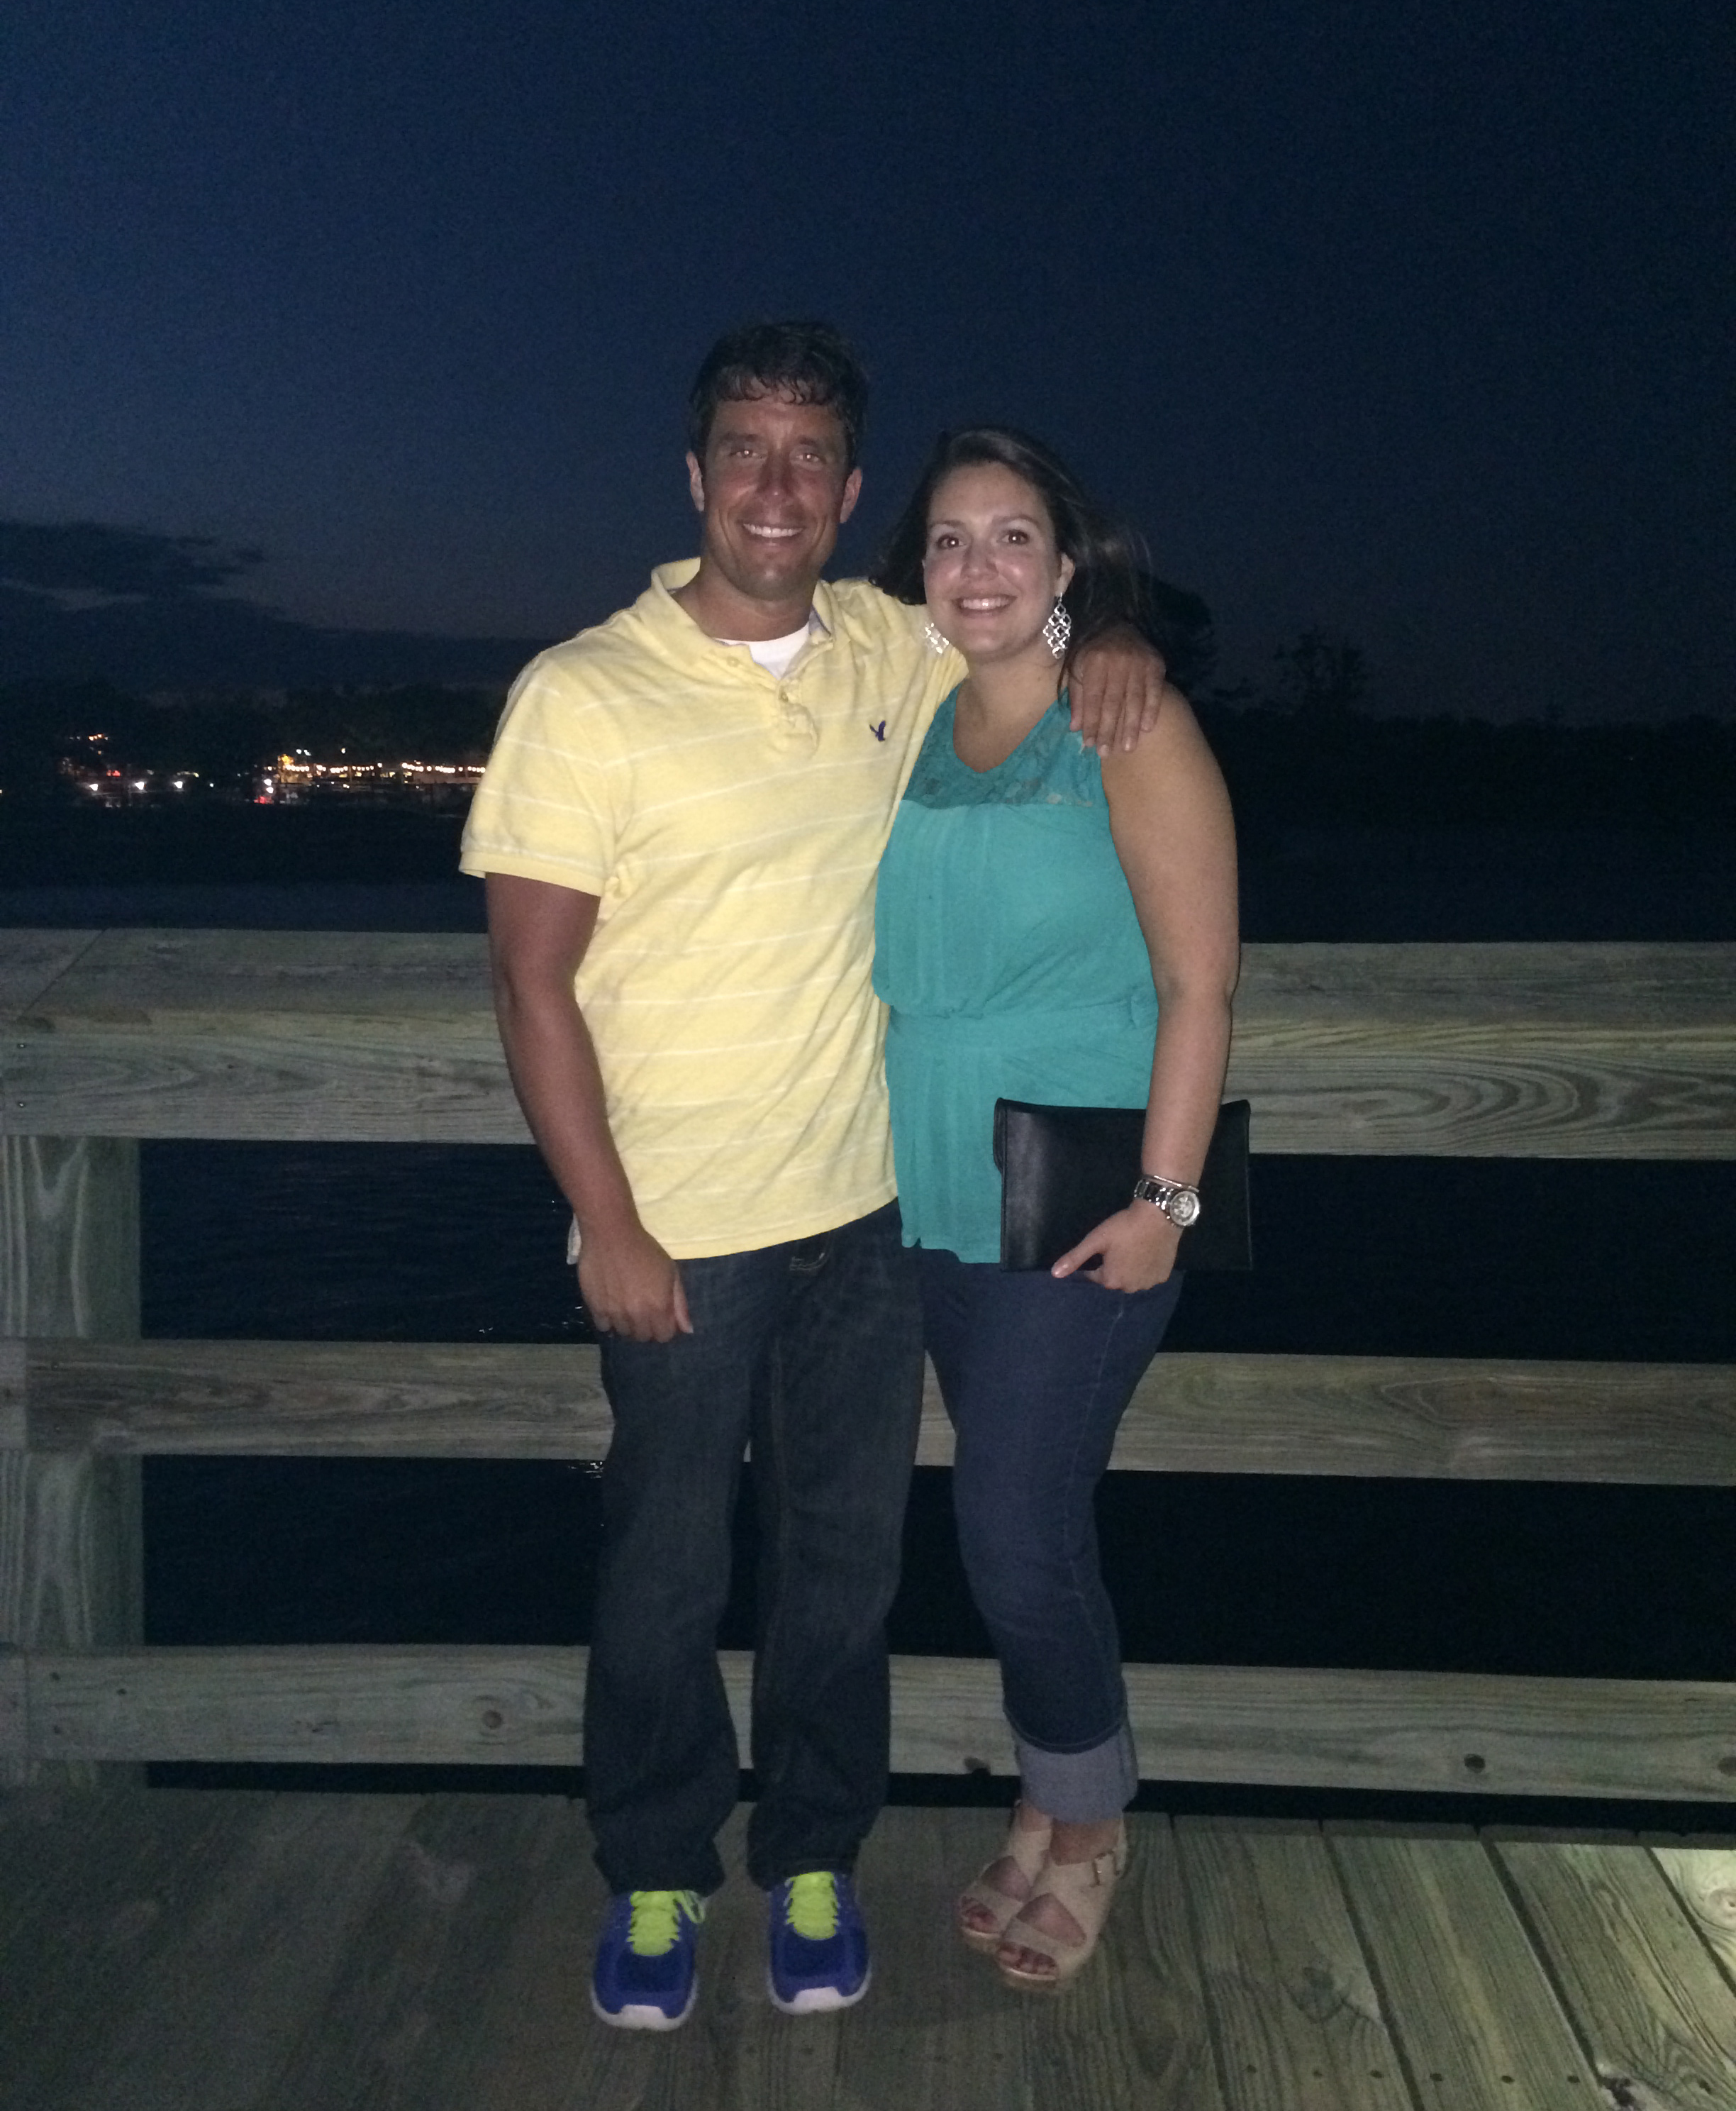 This was the photo from our first date on the pier. Now fast forward 13.5 months....